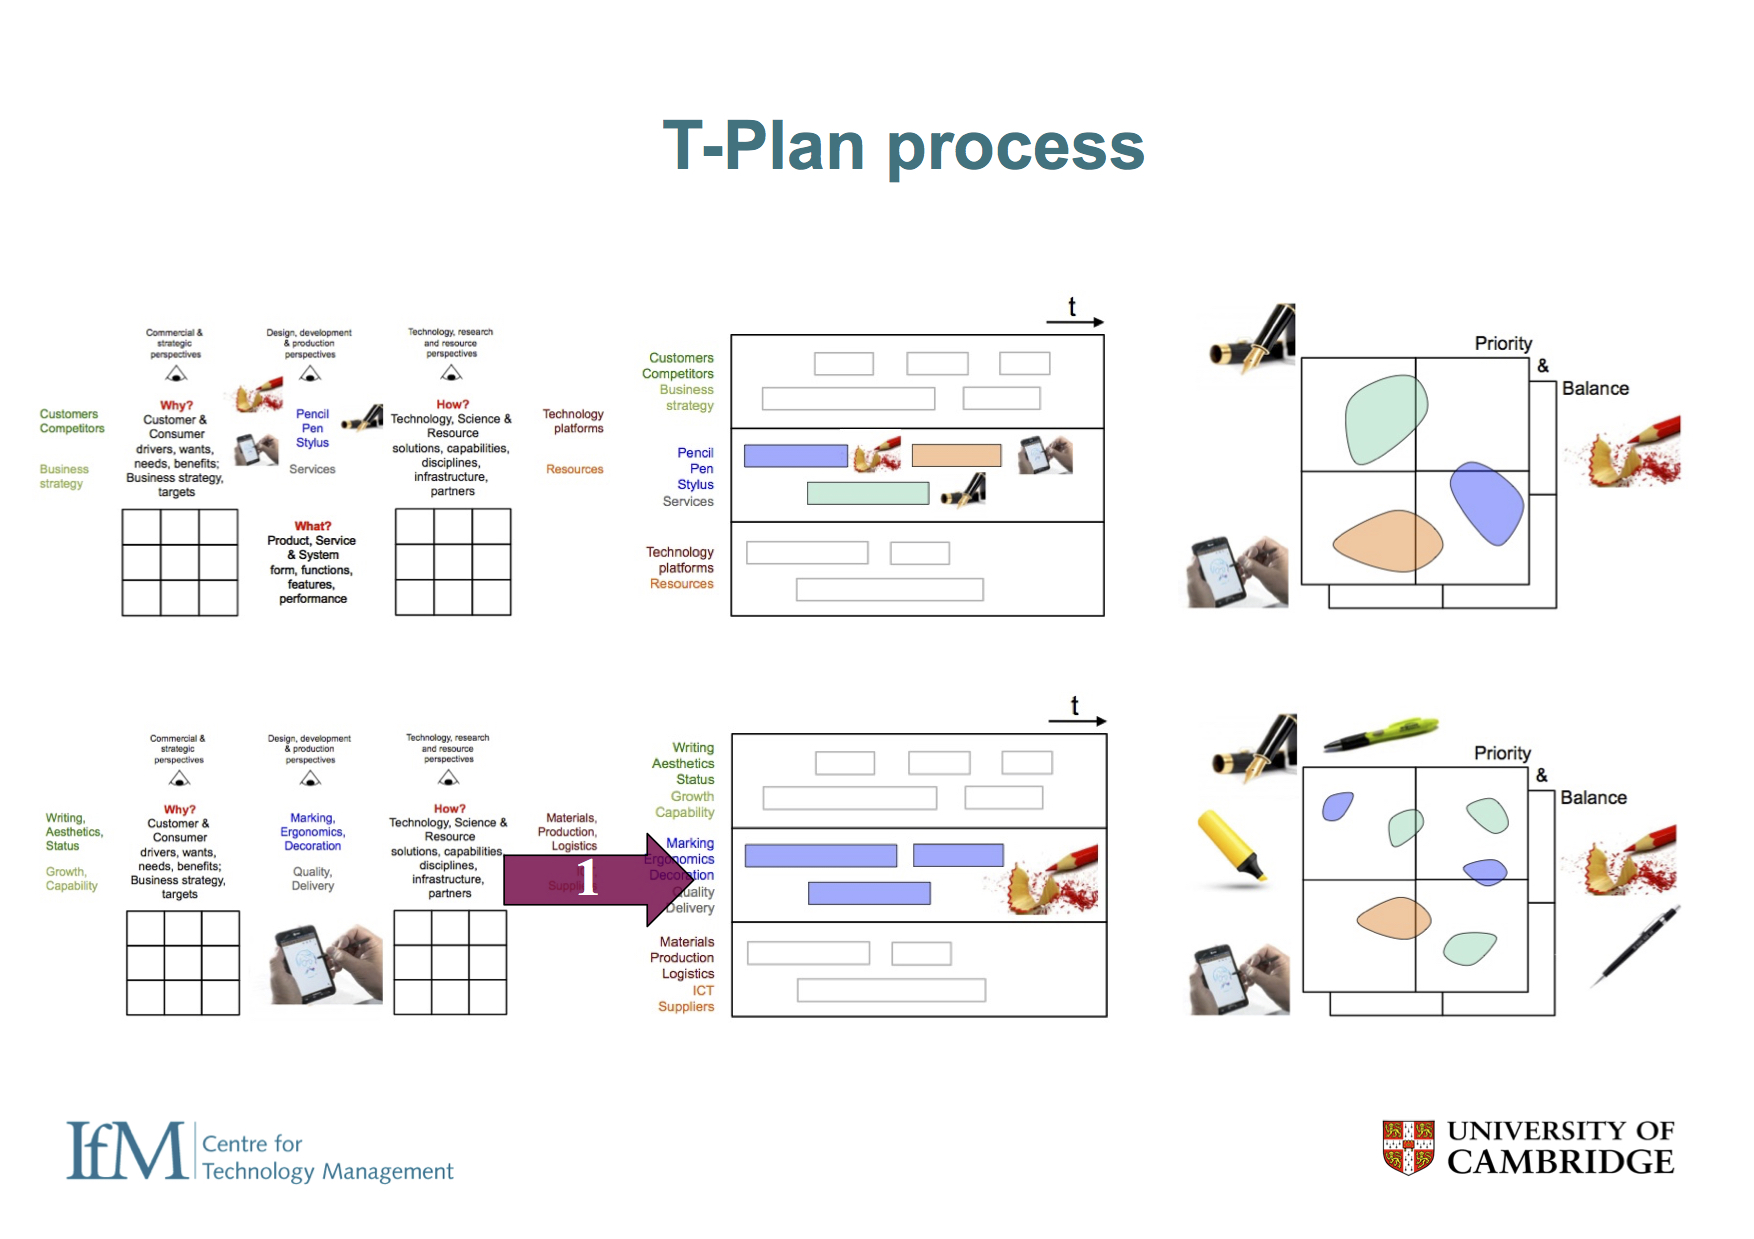 ... and the T-Plan approach is shown here. S-Plan and T-Plan are two stable references processes, which are useful starting points, but should not be considered static or prescriptive. When viewed through the lens of the scalable toolkit platform it's clear there may be many more plausible toolkit configurations, and a wider solution space is available to the skilled practitioner.